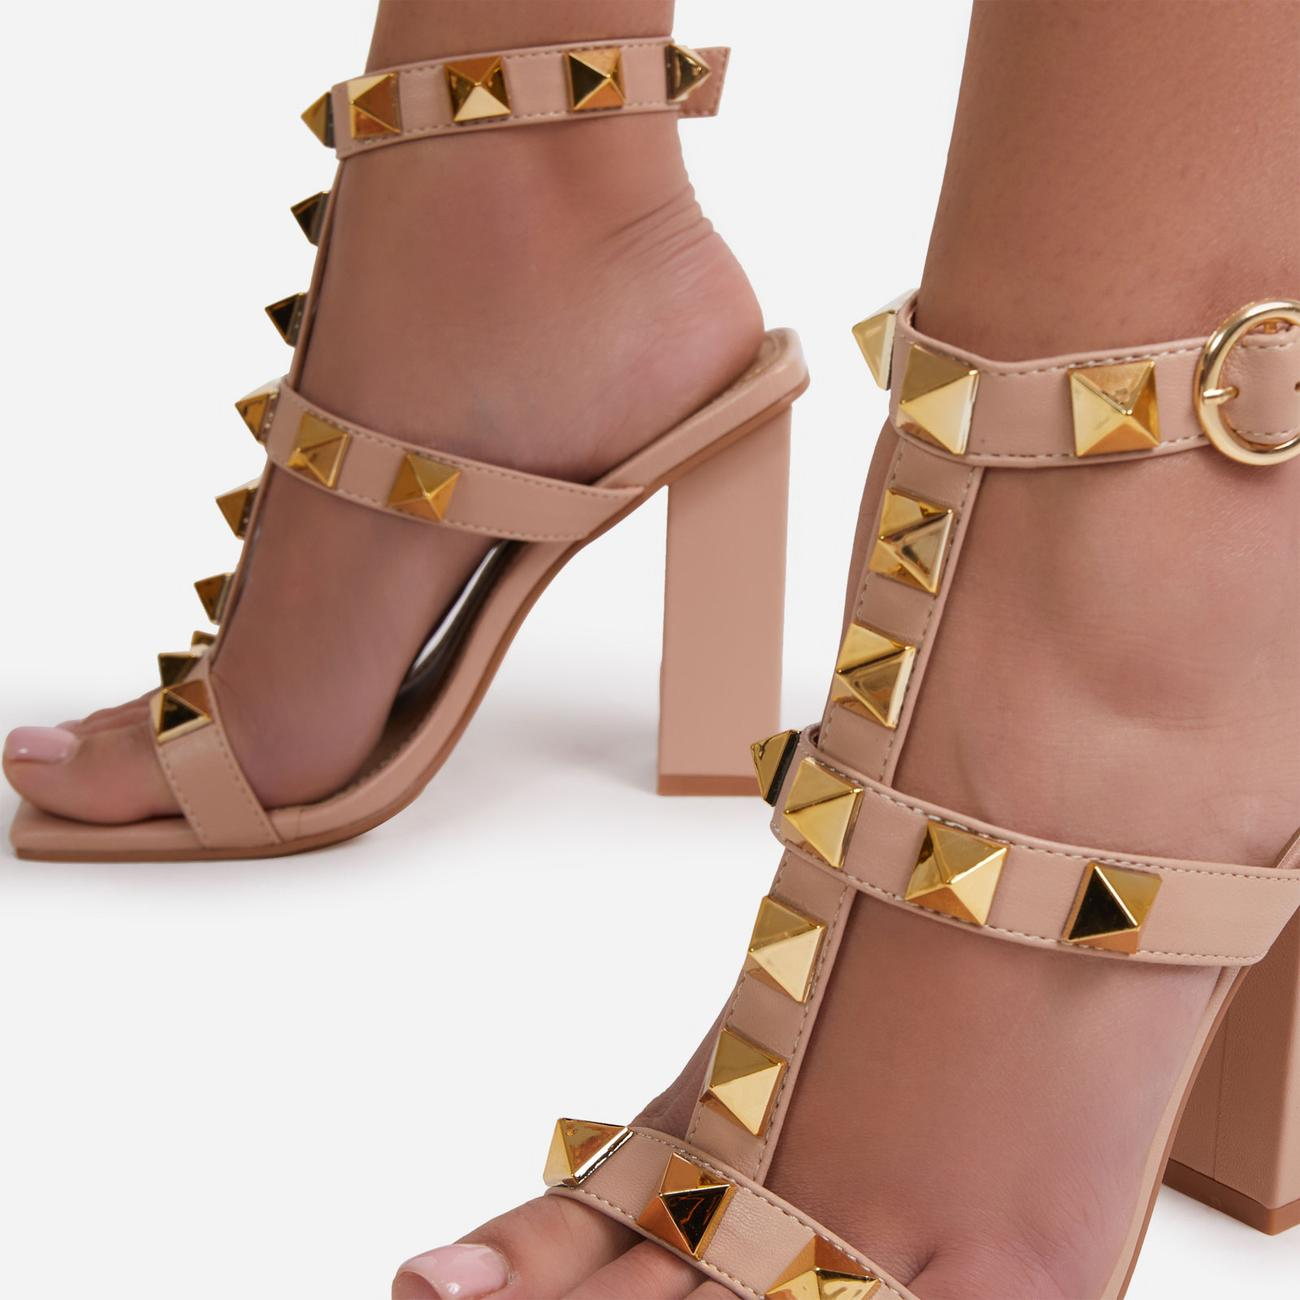 Malaga Studded Detail Caged Square Toe Block Heel In Nude Faux Leather Image 2